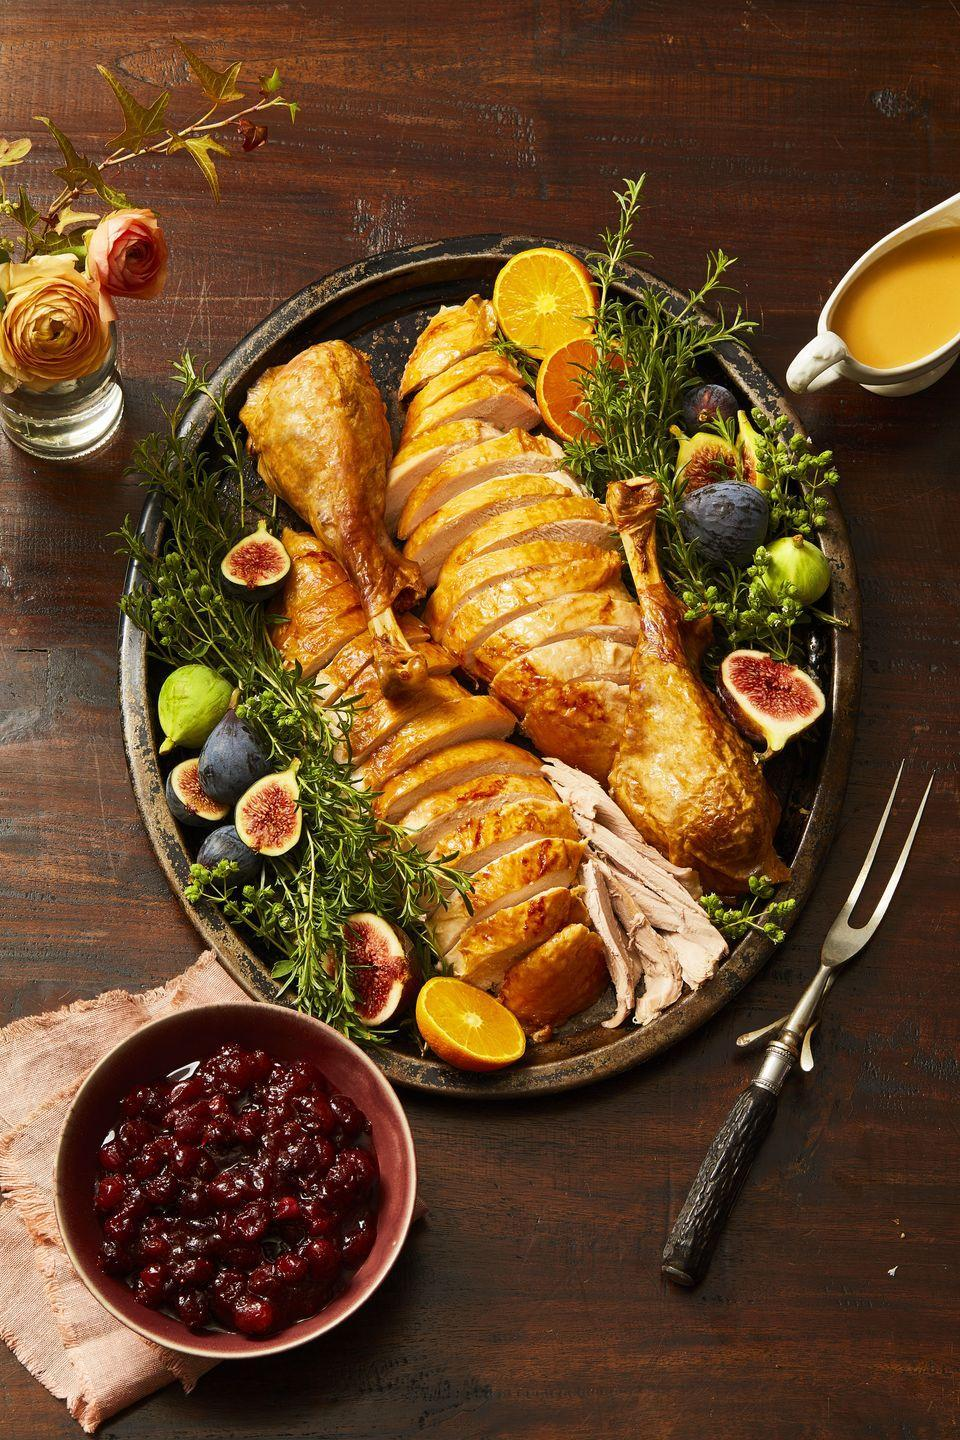 """<p>Our #1 secret to a well-seasoned turkey? The all-important (and oh so easy!) <a href=""""https://www.goodhousekeeping.com/food-recipes/cooking/how-to/a24305/how-to-brine-turkey/"""" rel=""""nofollow noopener"""" target=""""_blank"""" data-ylk=""""slk:dry brine"""" class=""""link rapid-noclick-resp"""">dry brine</a>. The Test Kitchen turns to this method for maximum flavor, juicier meat and the crispiest skin. Here's how it's done: Rub herbs and 2 Tbsp salt all over the turkey, pop it in a plastic bag and refrigerate. You can season your turkey the night before or as far in advance as 2 days.</p>"""